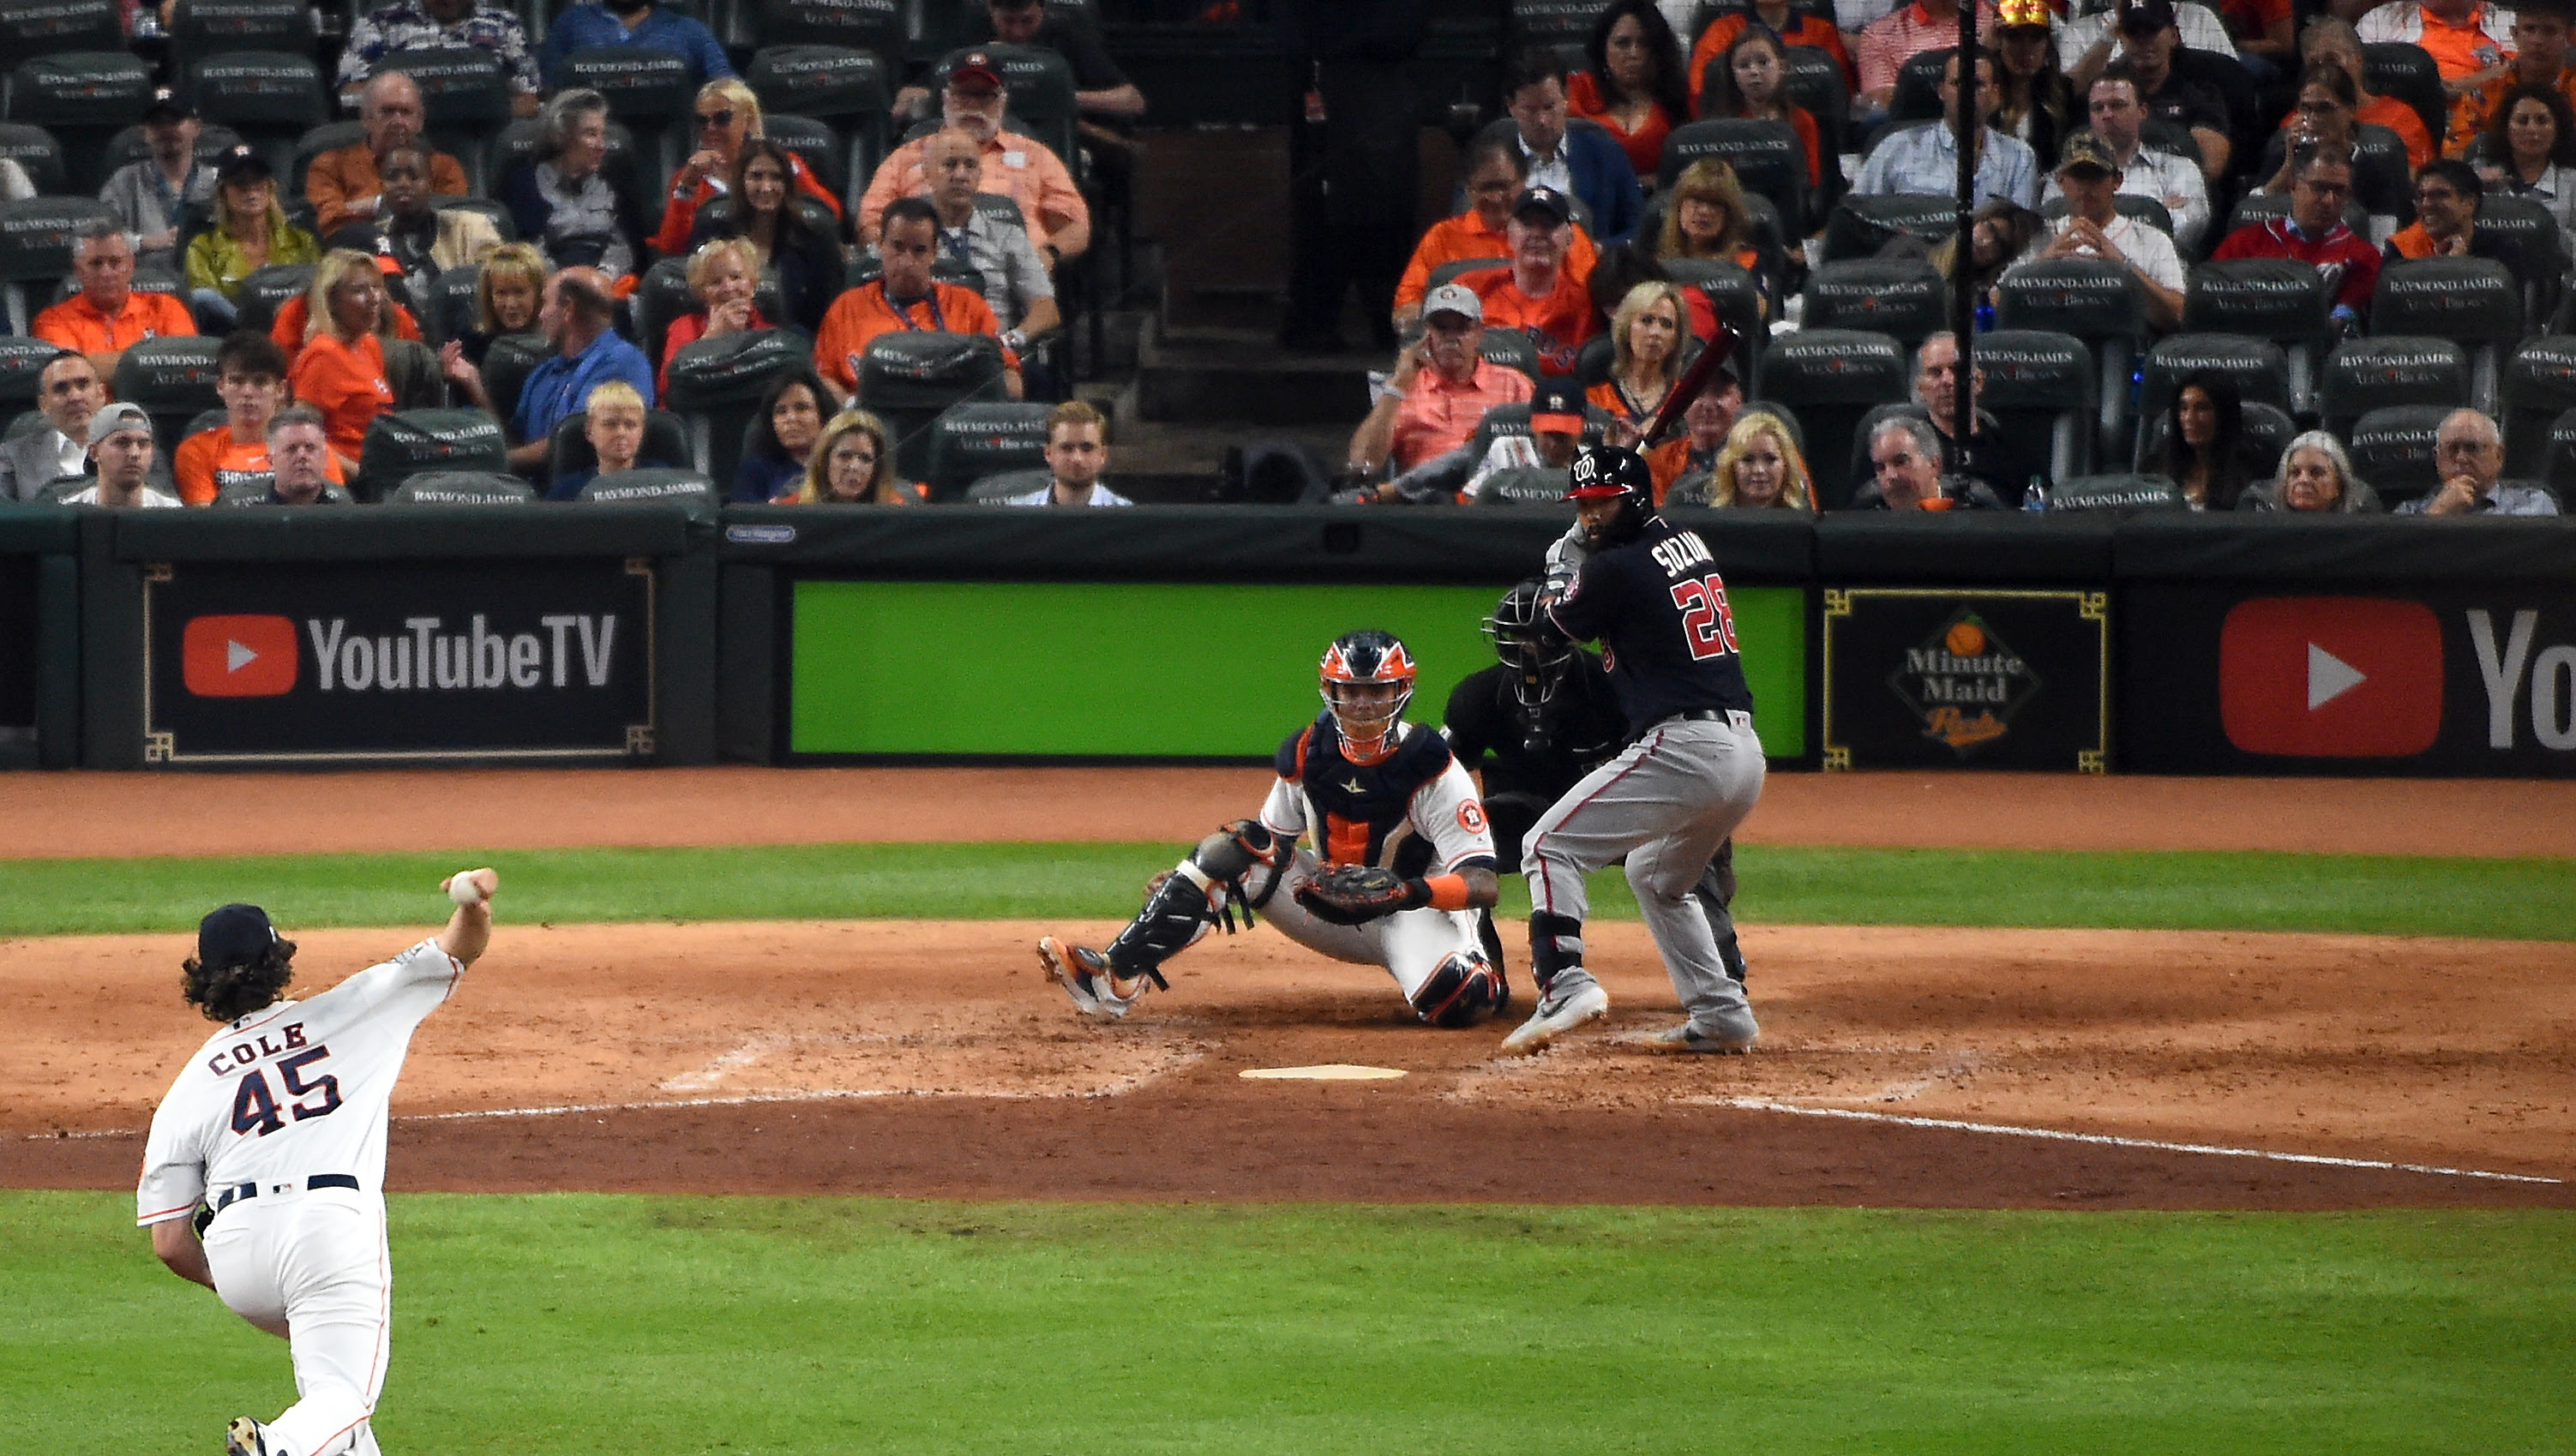 World Series 2019 live stream: how to watch the Nationals vs Astros Game 2 online from anywhere